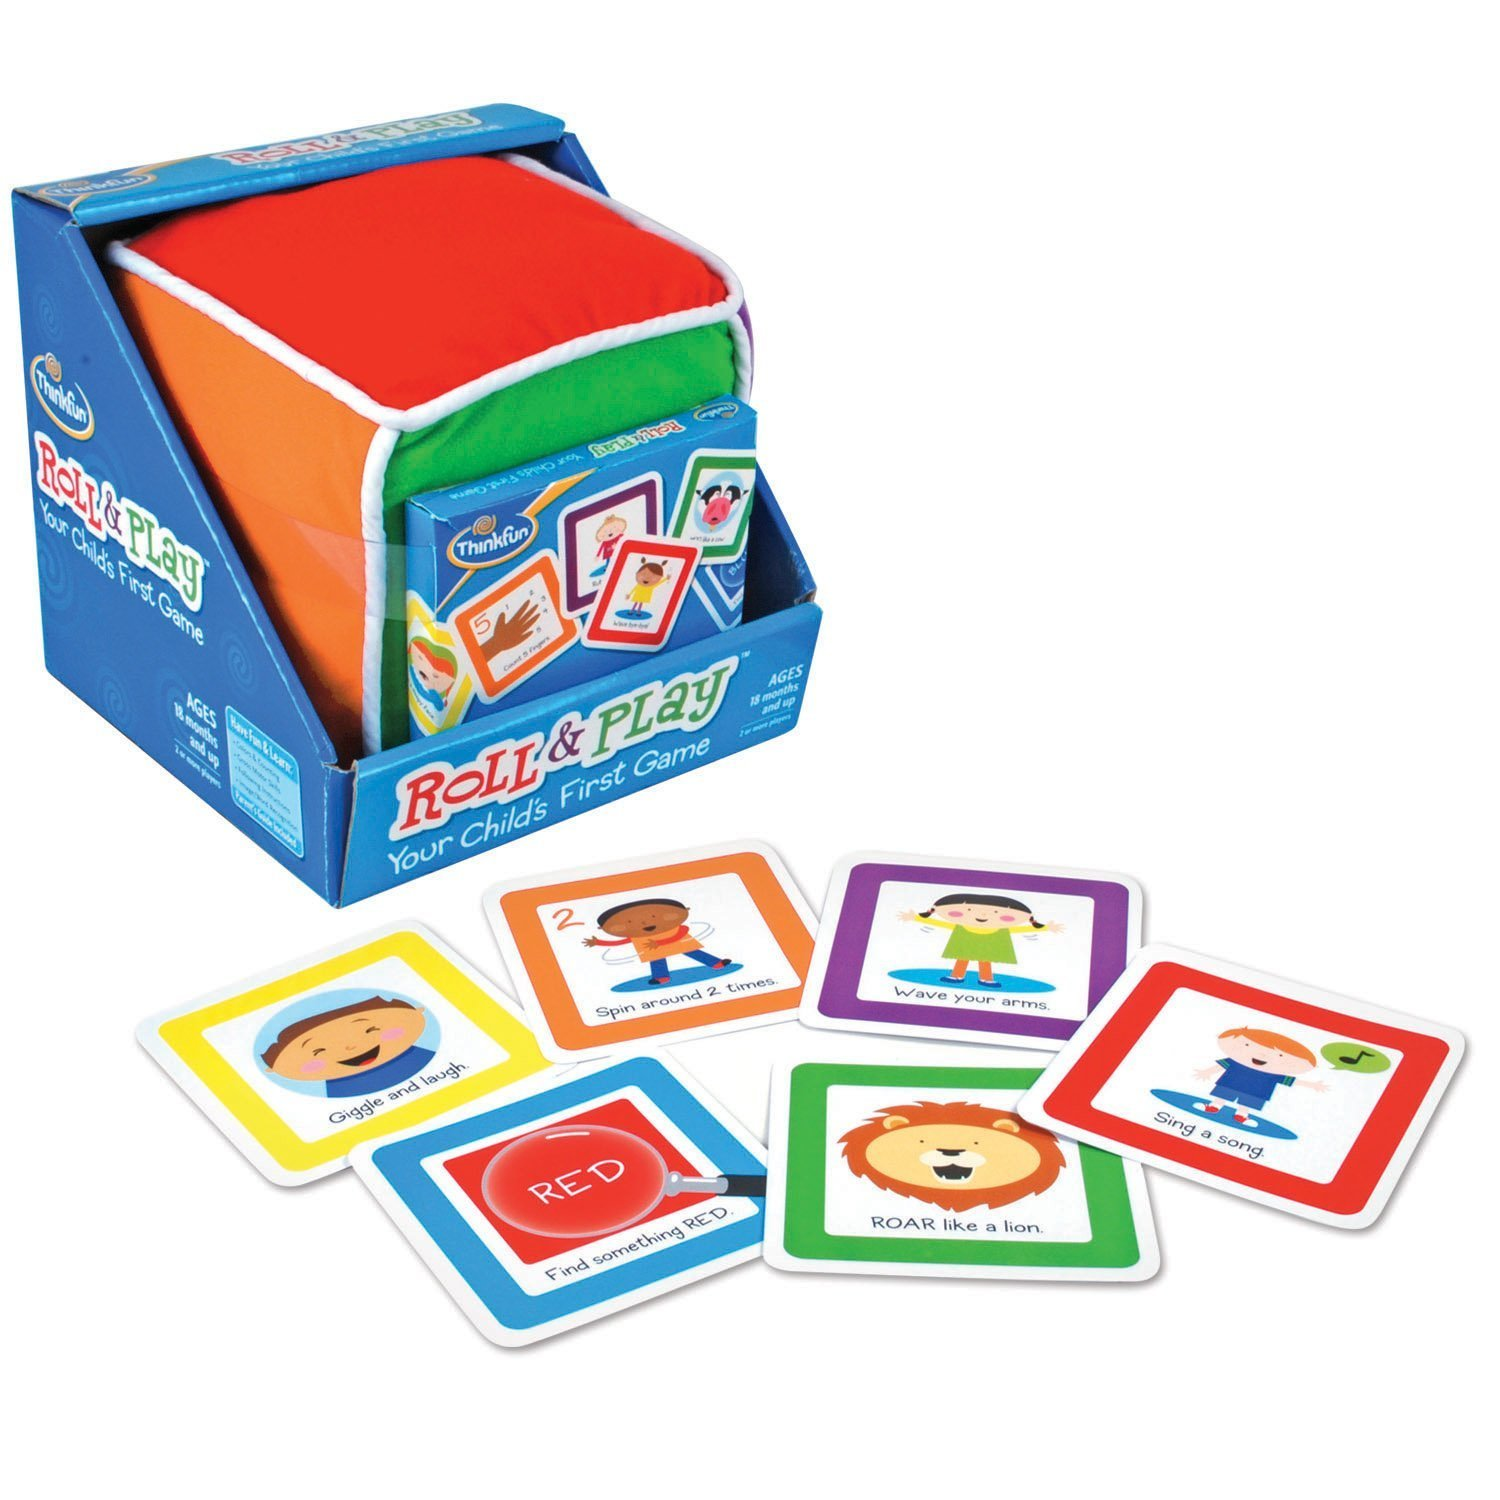 Thinkfun - Roll & Play Game image